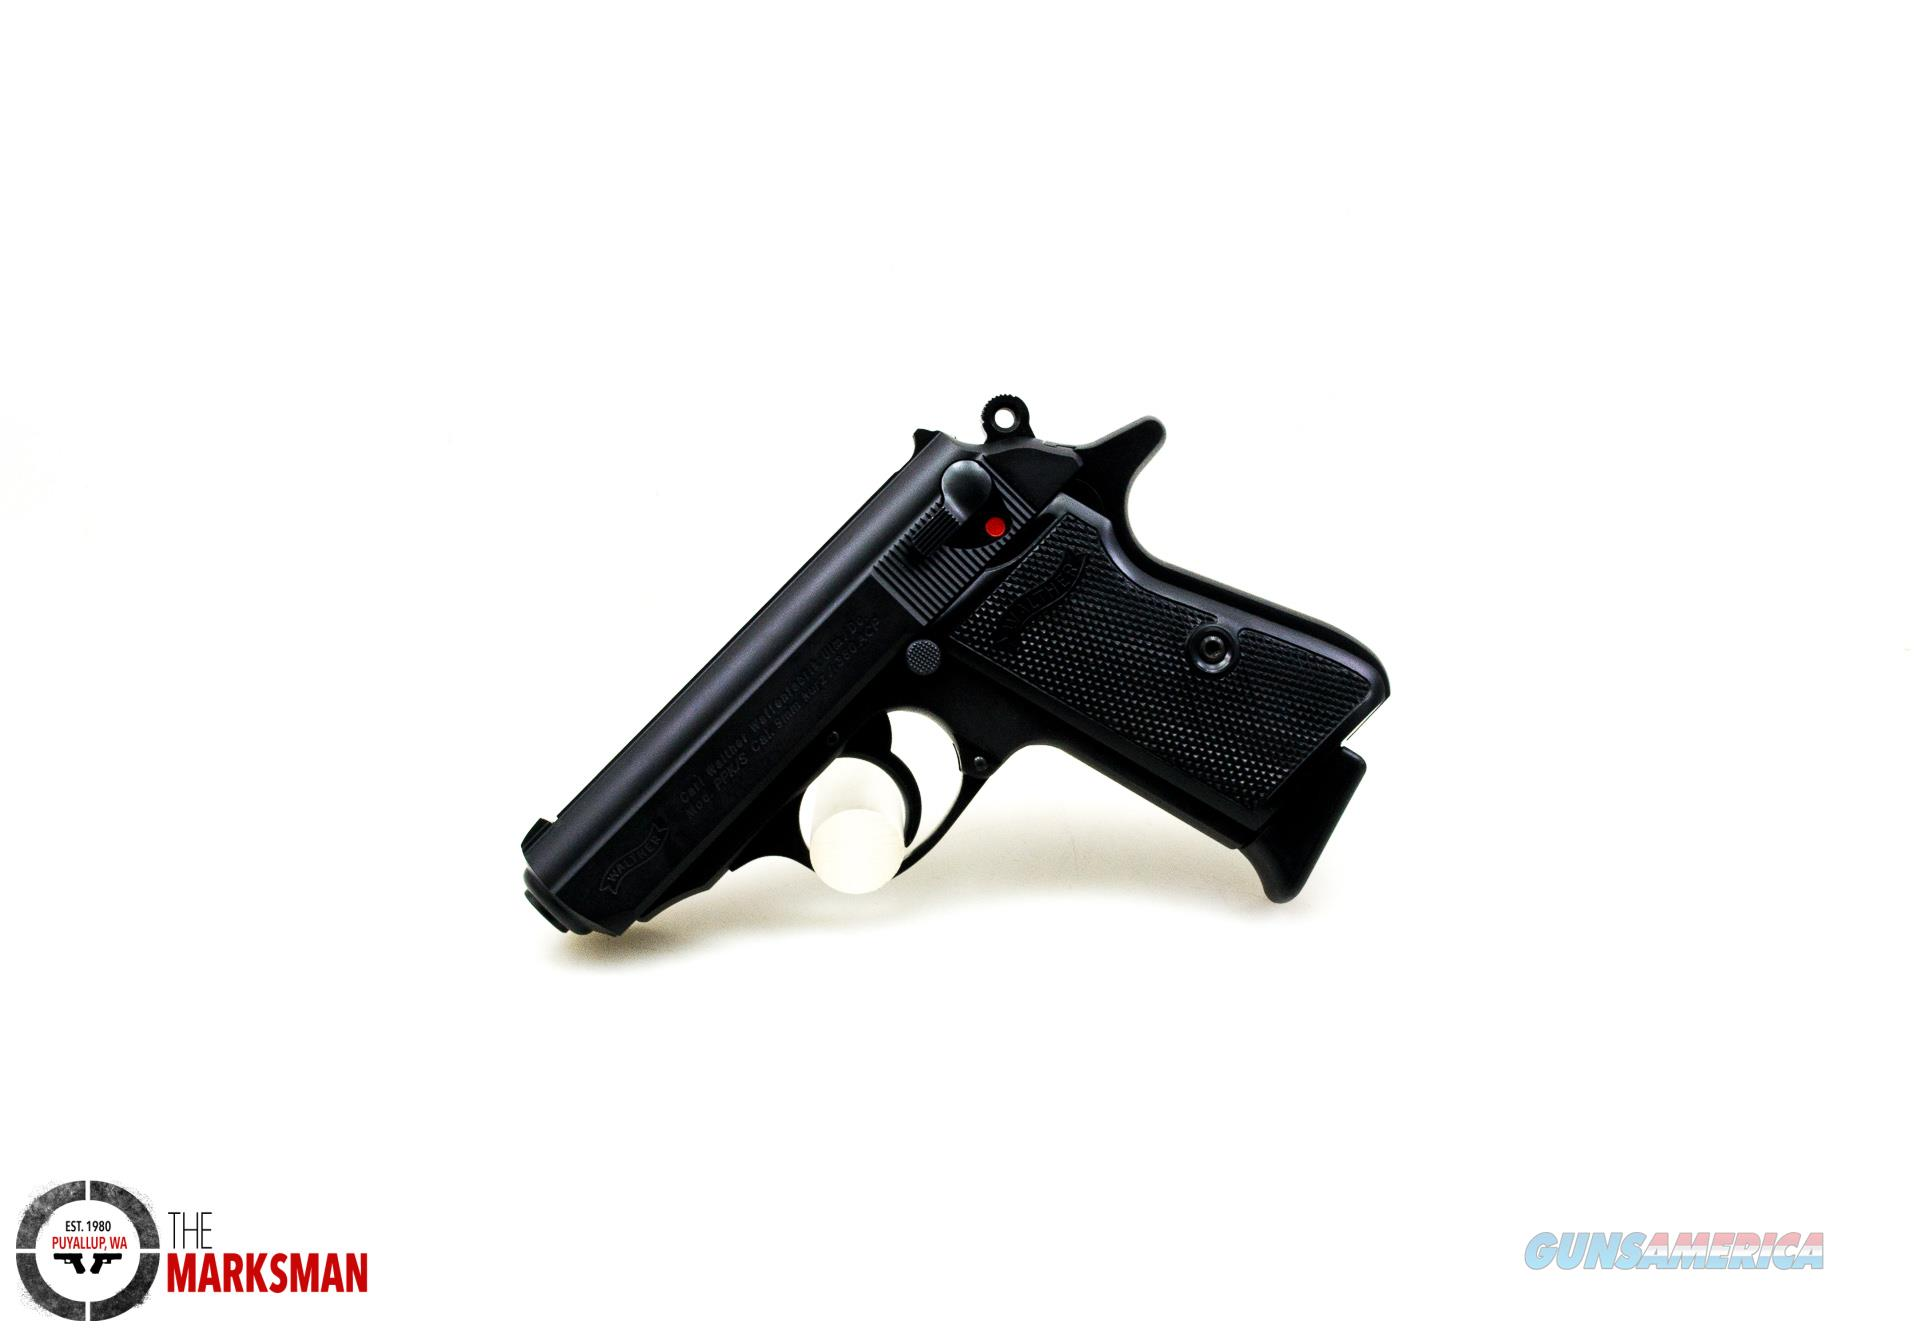 Walther PPK/s, .380 ACP, Black NEW 4796006  Guns > Pistols > Walther Pistols > Post WWII > PPK Series